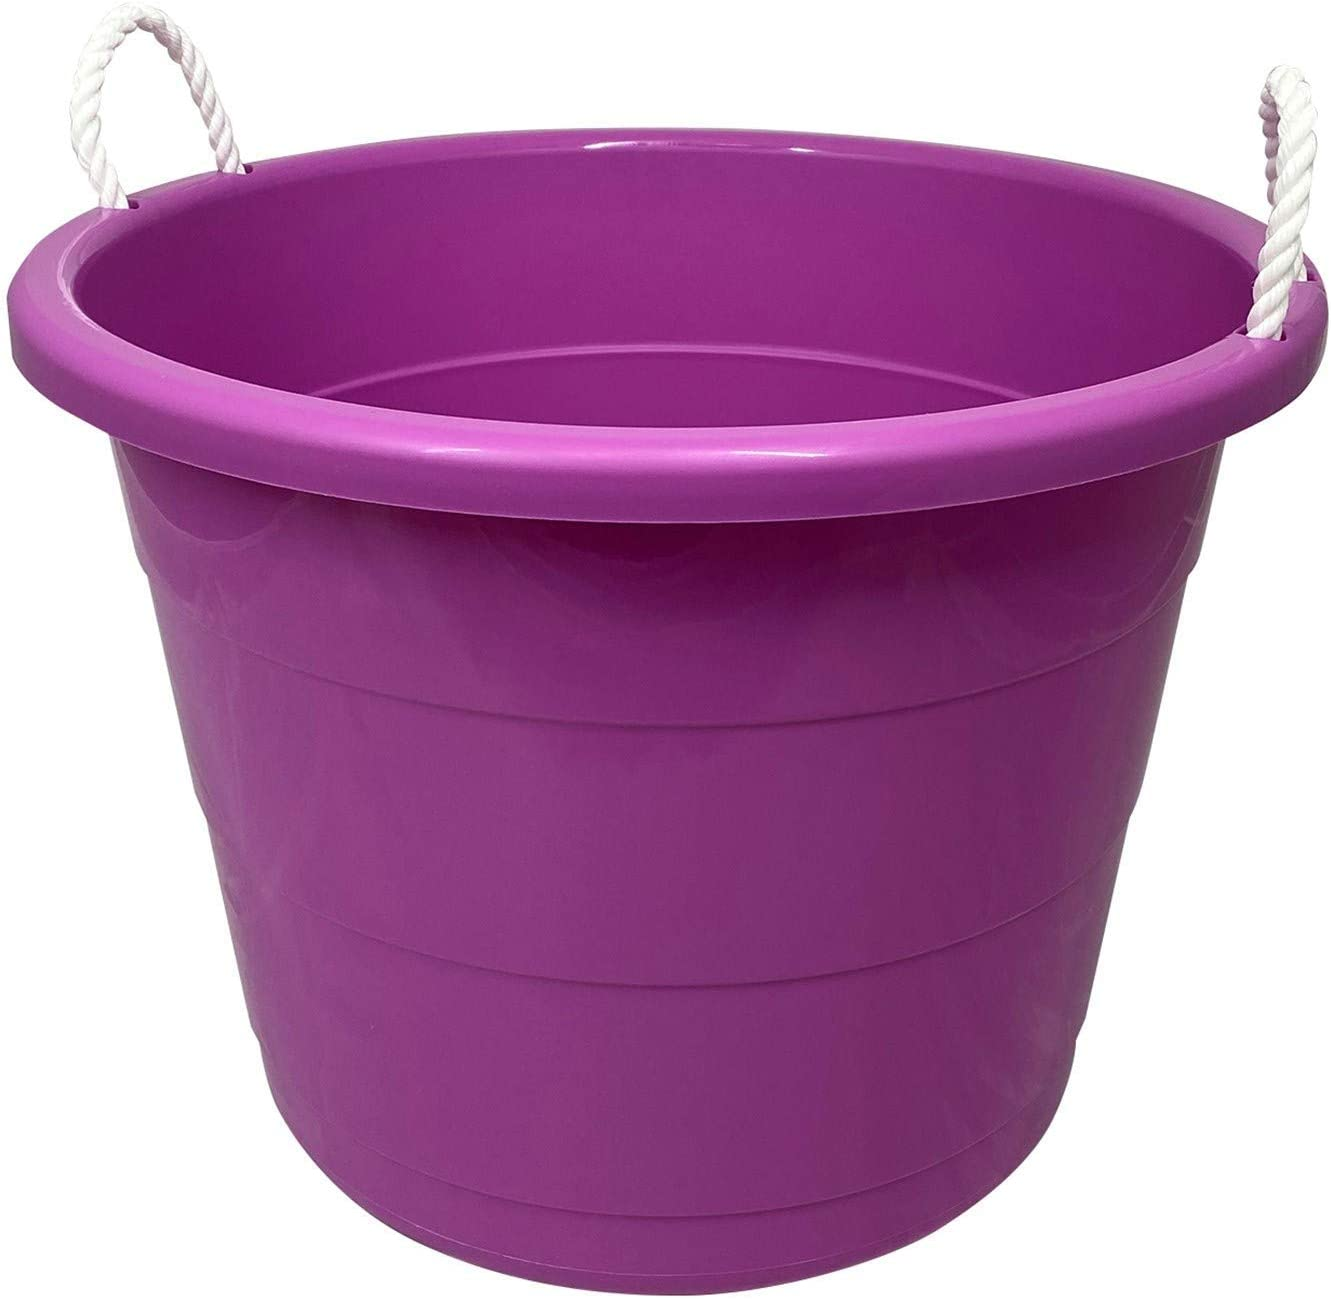 HOMZ Plastic Utility Rope Handled Tub, 17 Gallon, Set of 2, Radiant Orchid, 2 Pack